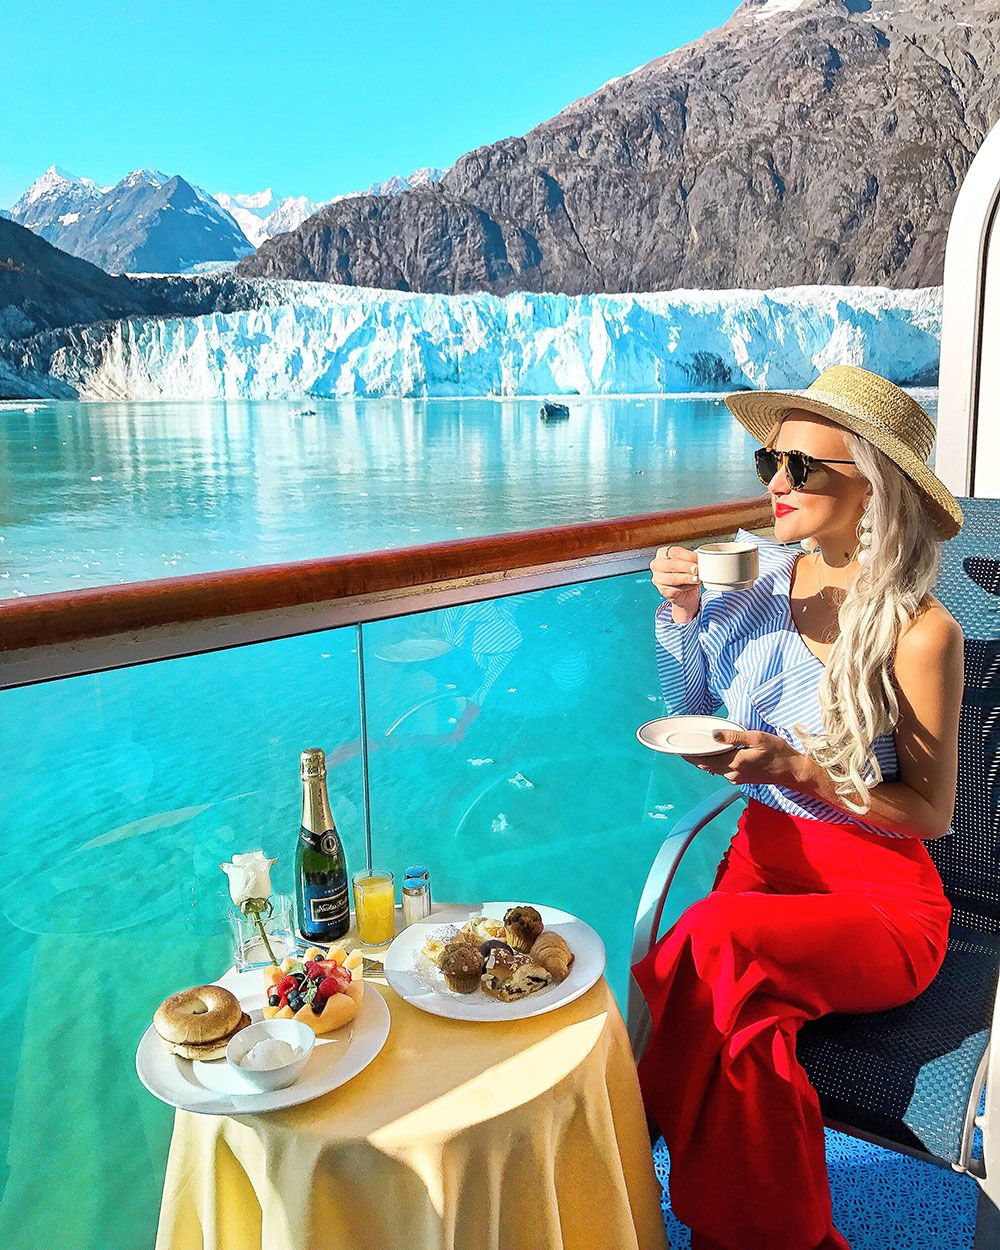 10 Reasons You Should Plan an Alaskan Cruise #summercruiseoutfits